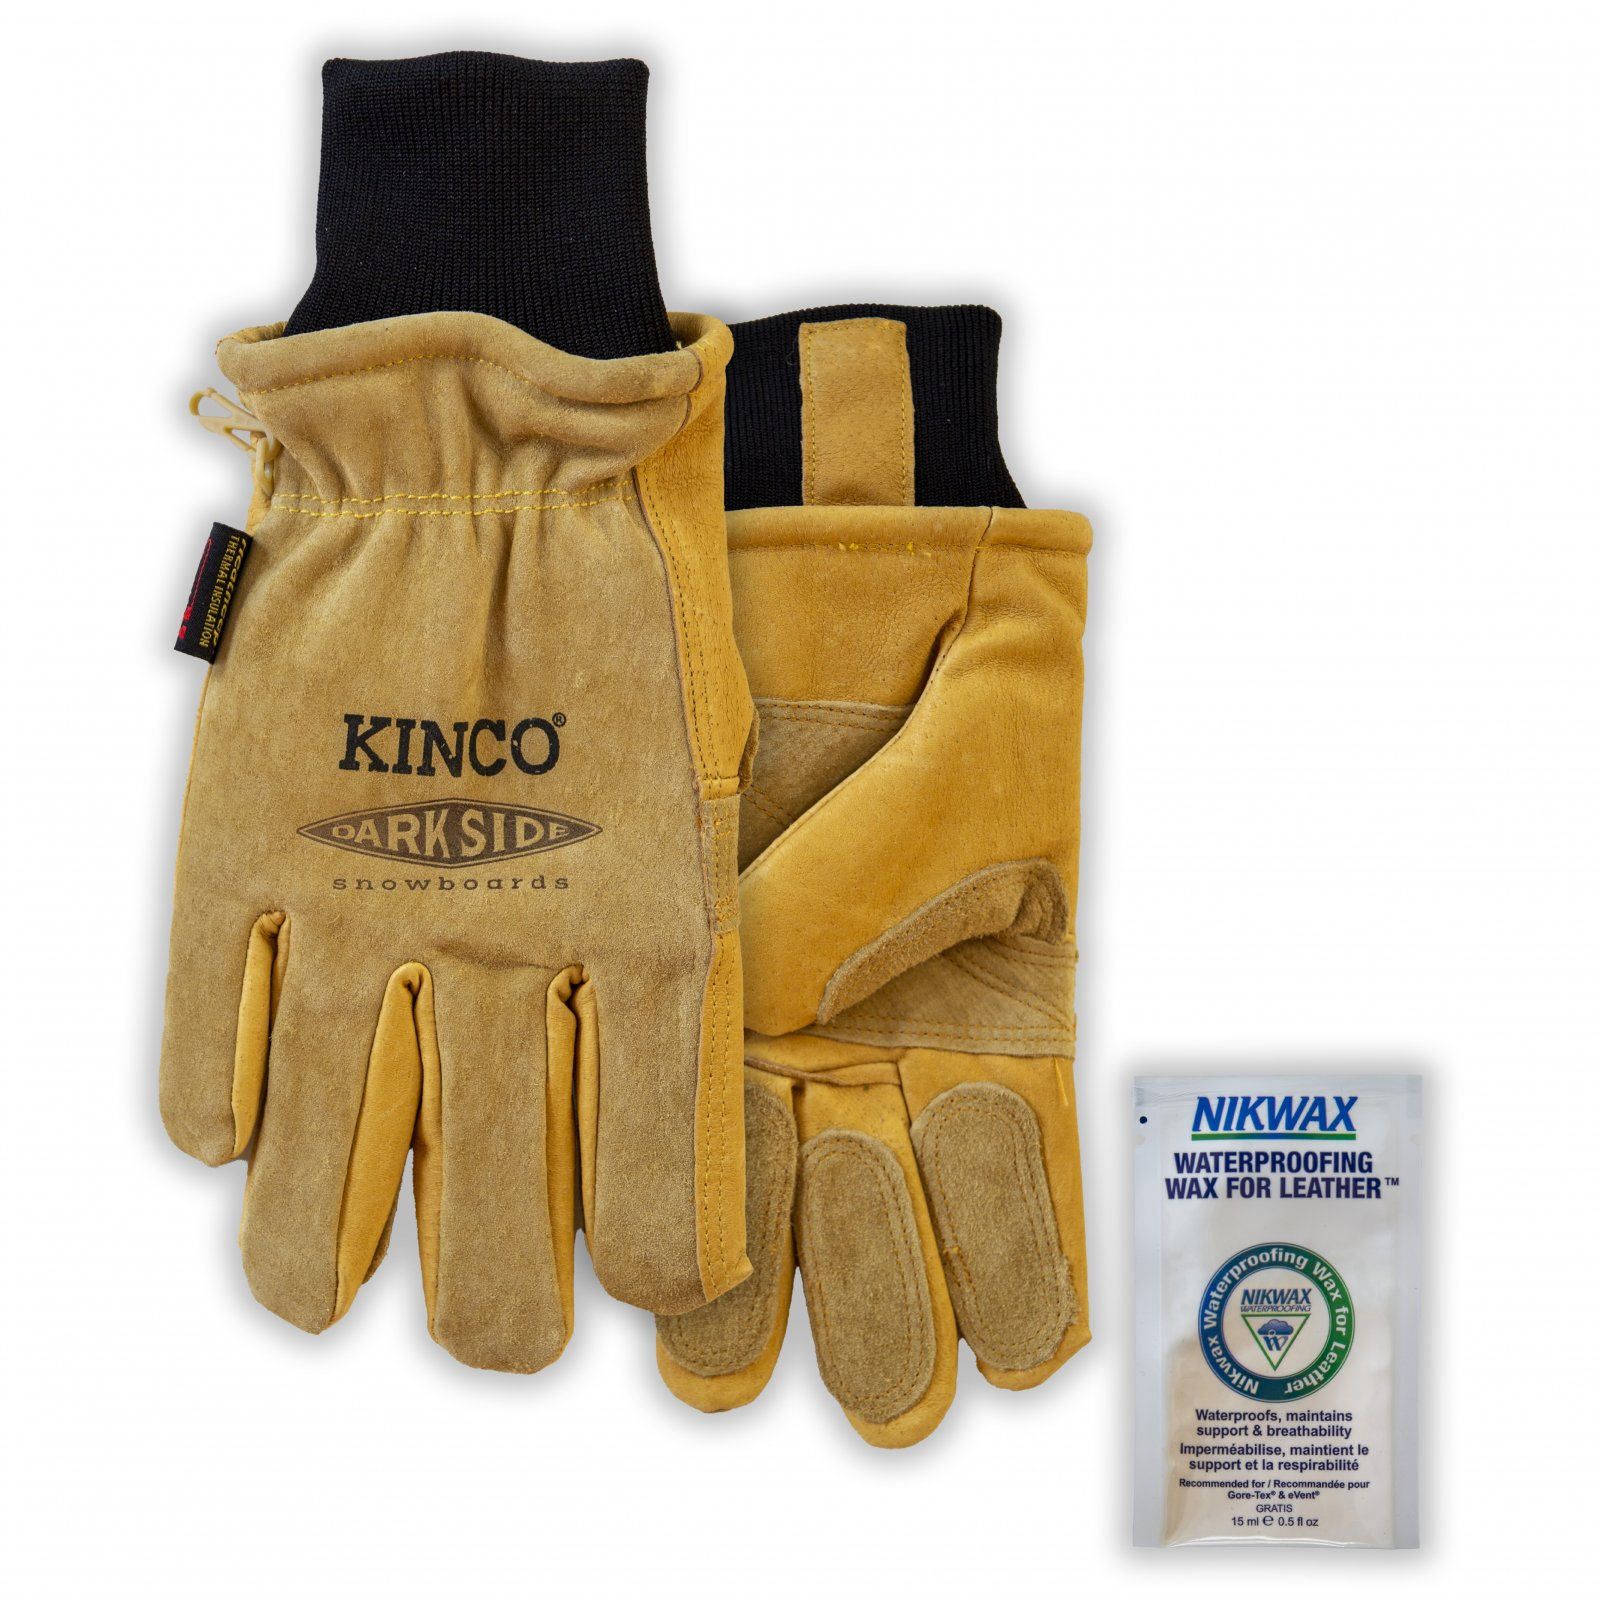 Kinco x Darkside Glove